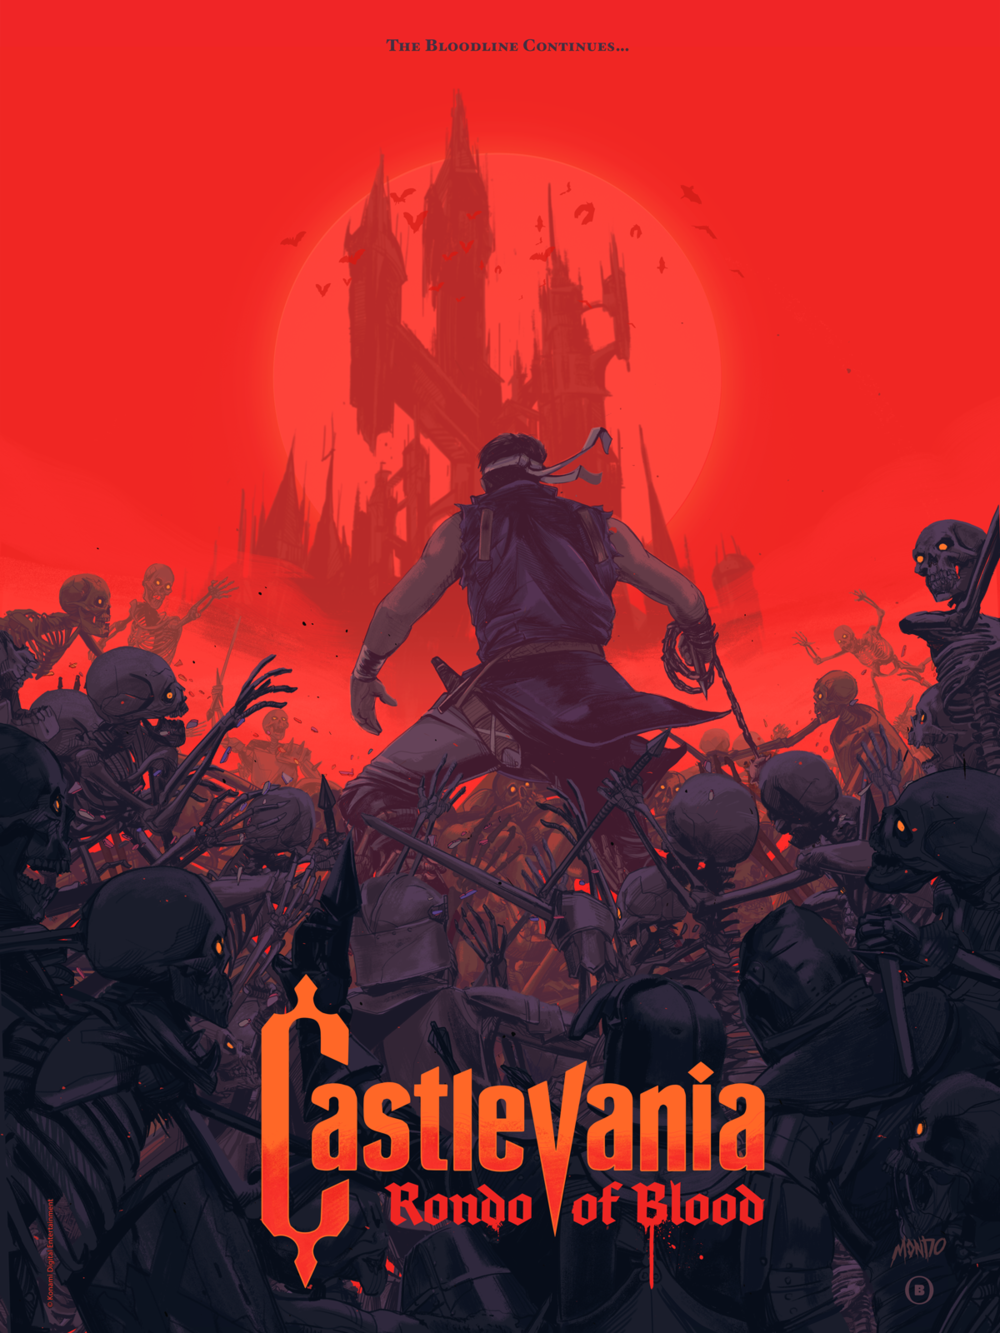 Castlevania: Rondo of Blood - Konami / Mondoscreen-printed poster celebrating the re-release of Castlevania: Rondo of Blood